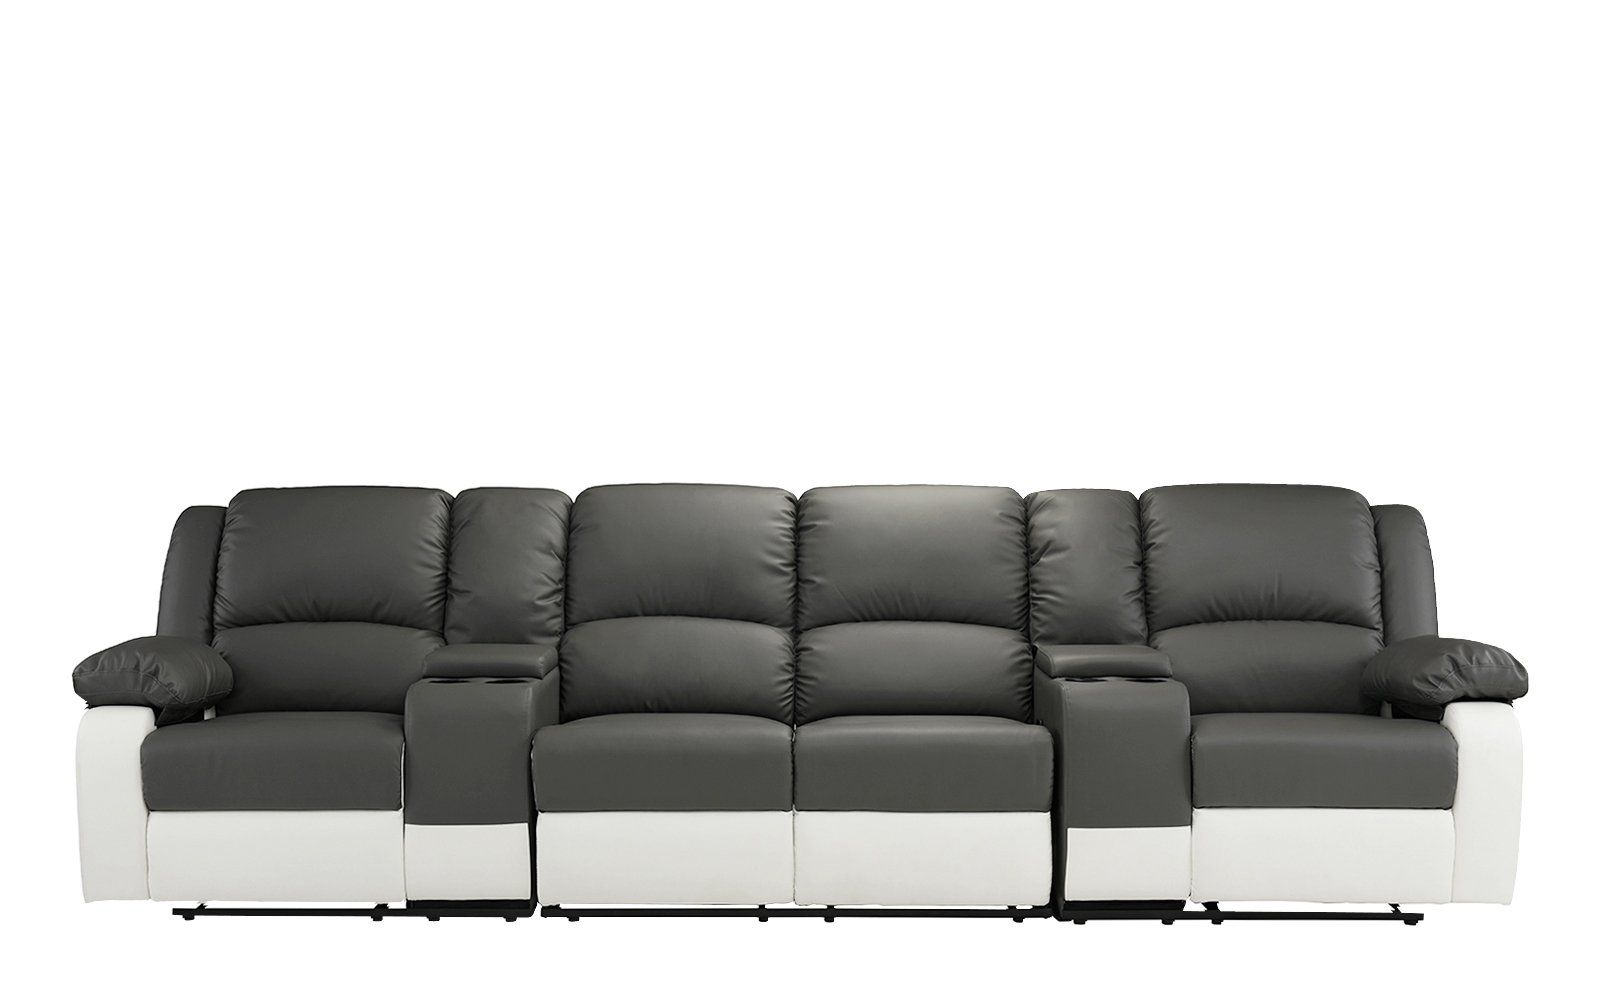 Charmant Heather 4 Seater Home Theater Recliner Sofa